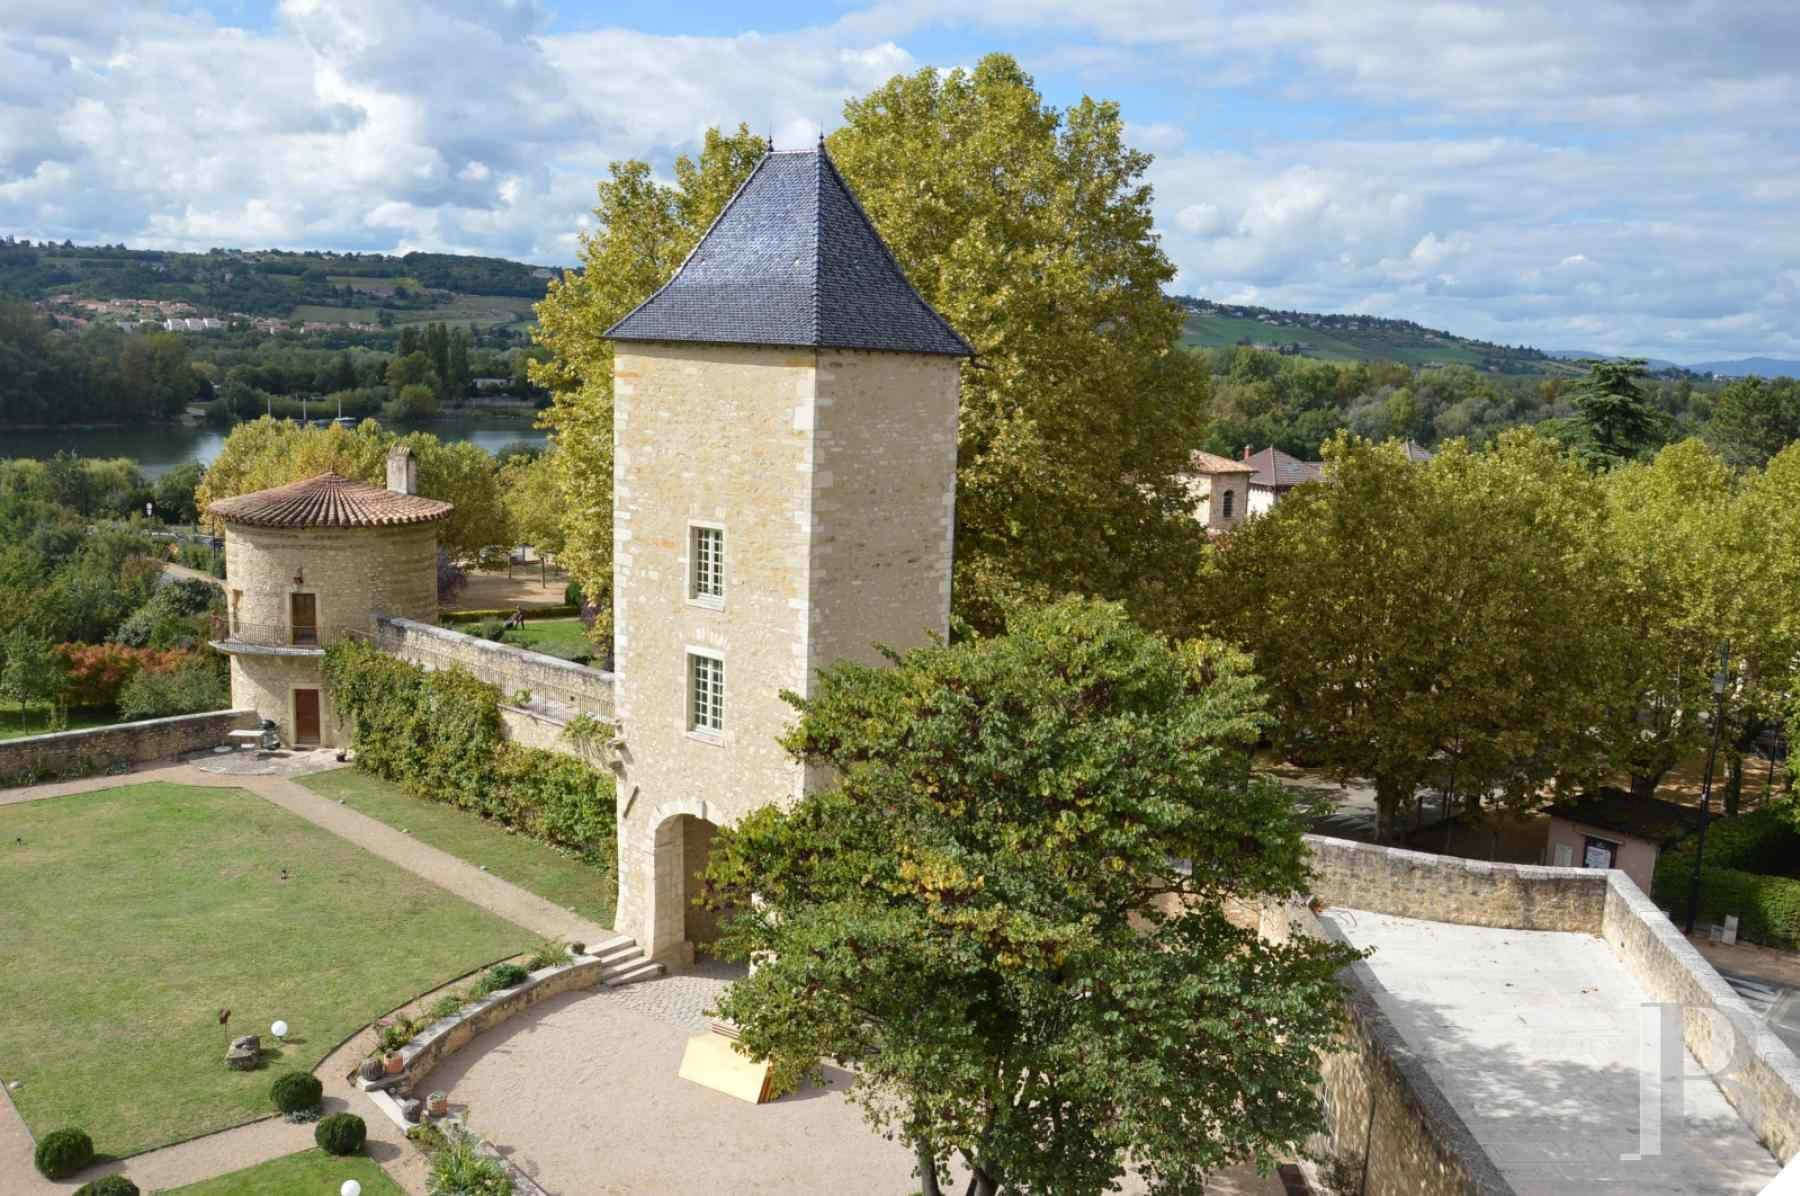 chateaux for sale France rhones alps lyon medieval - 11 zoom